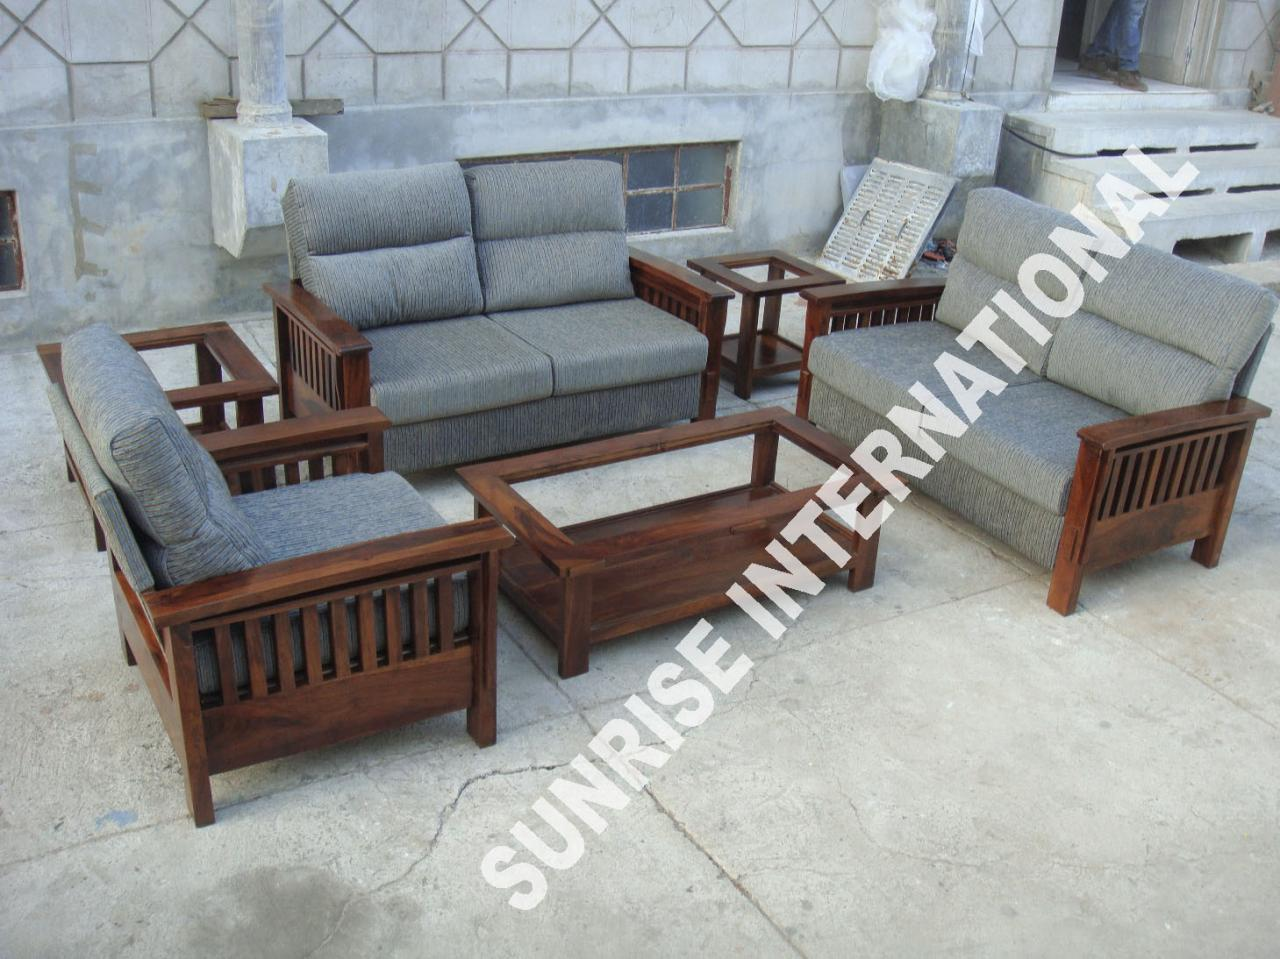 Wood Sala Set Ideas Sunrise International Wooden Sofa Sets And L Shade Sofa Set